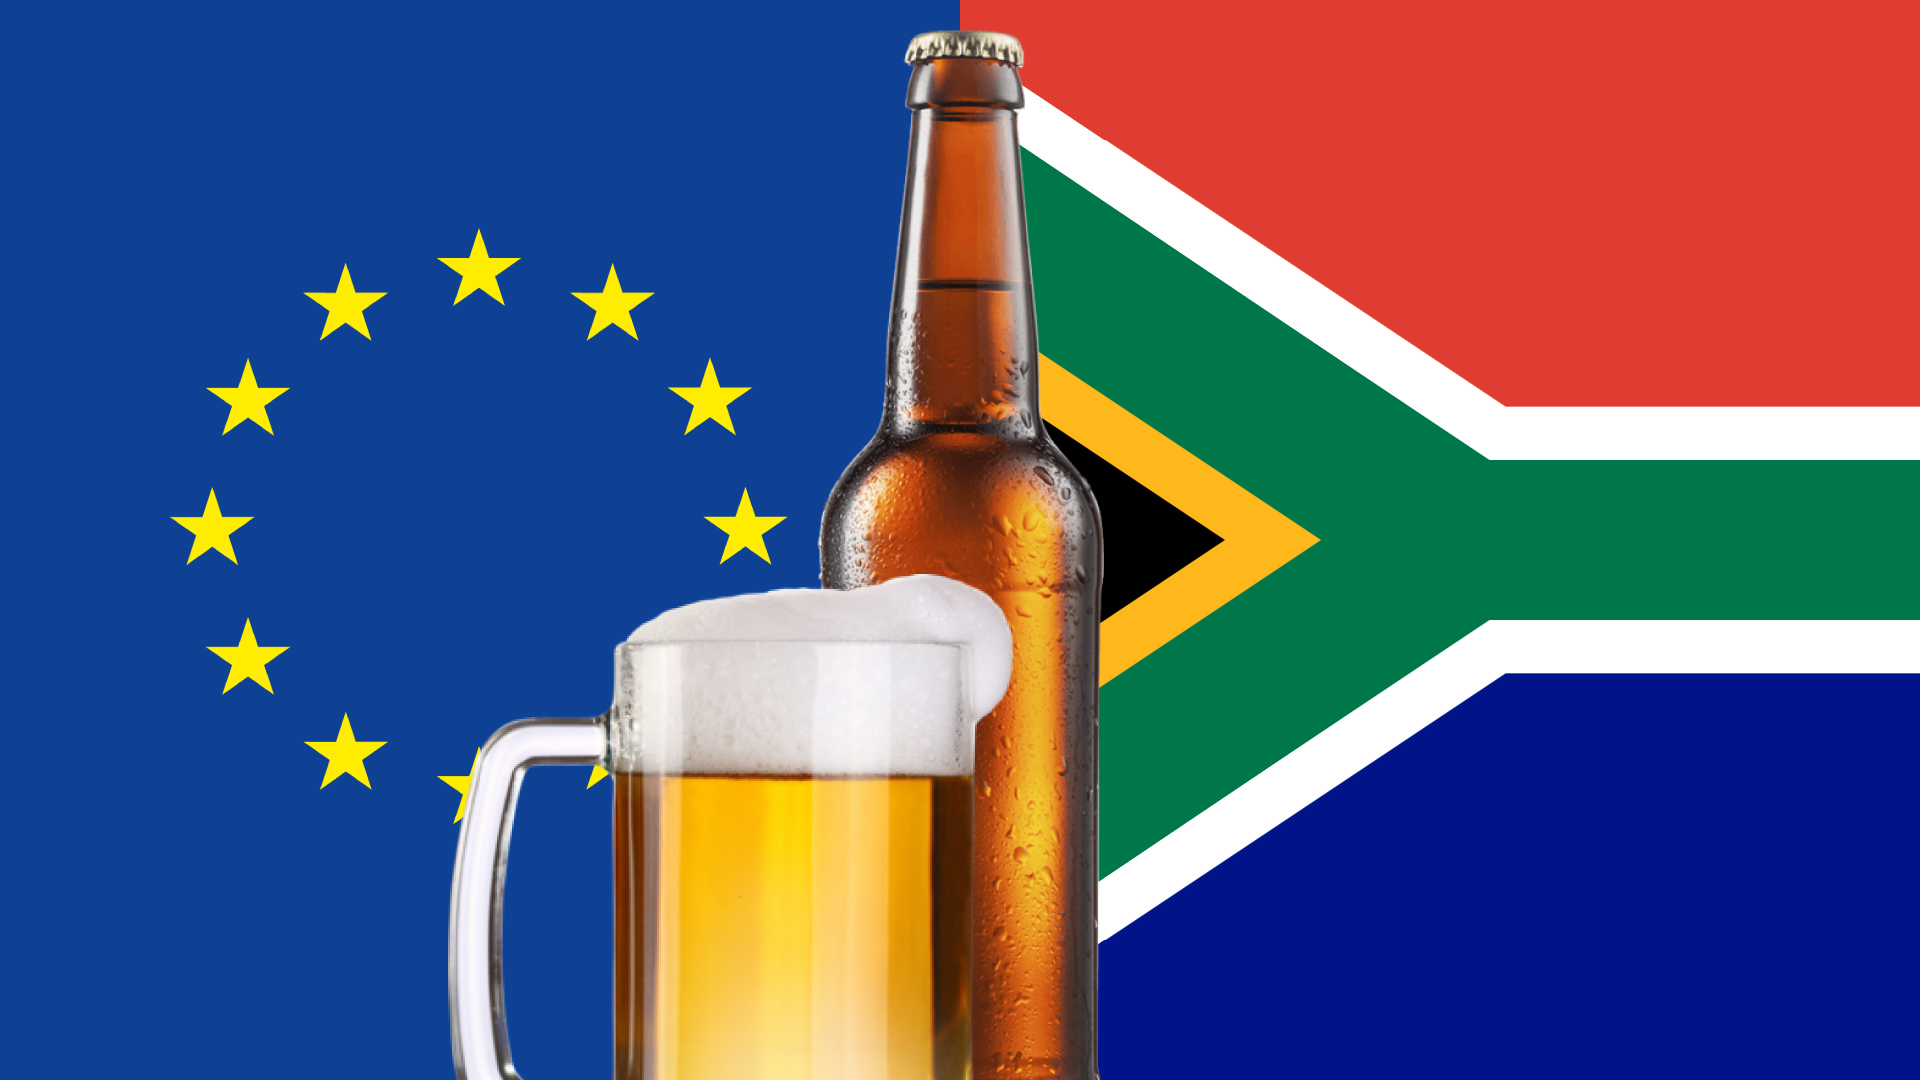 South Africa's alcohol sales ban now threatens trade partnership deal with the European Union, warns spiritsEUROPE. Photo: Supplied